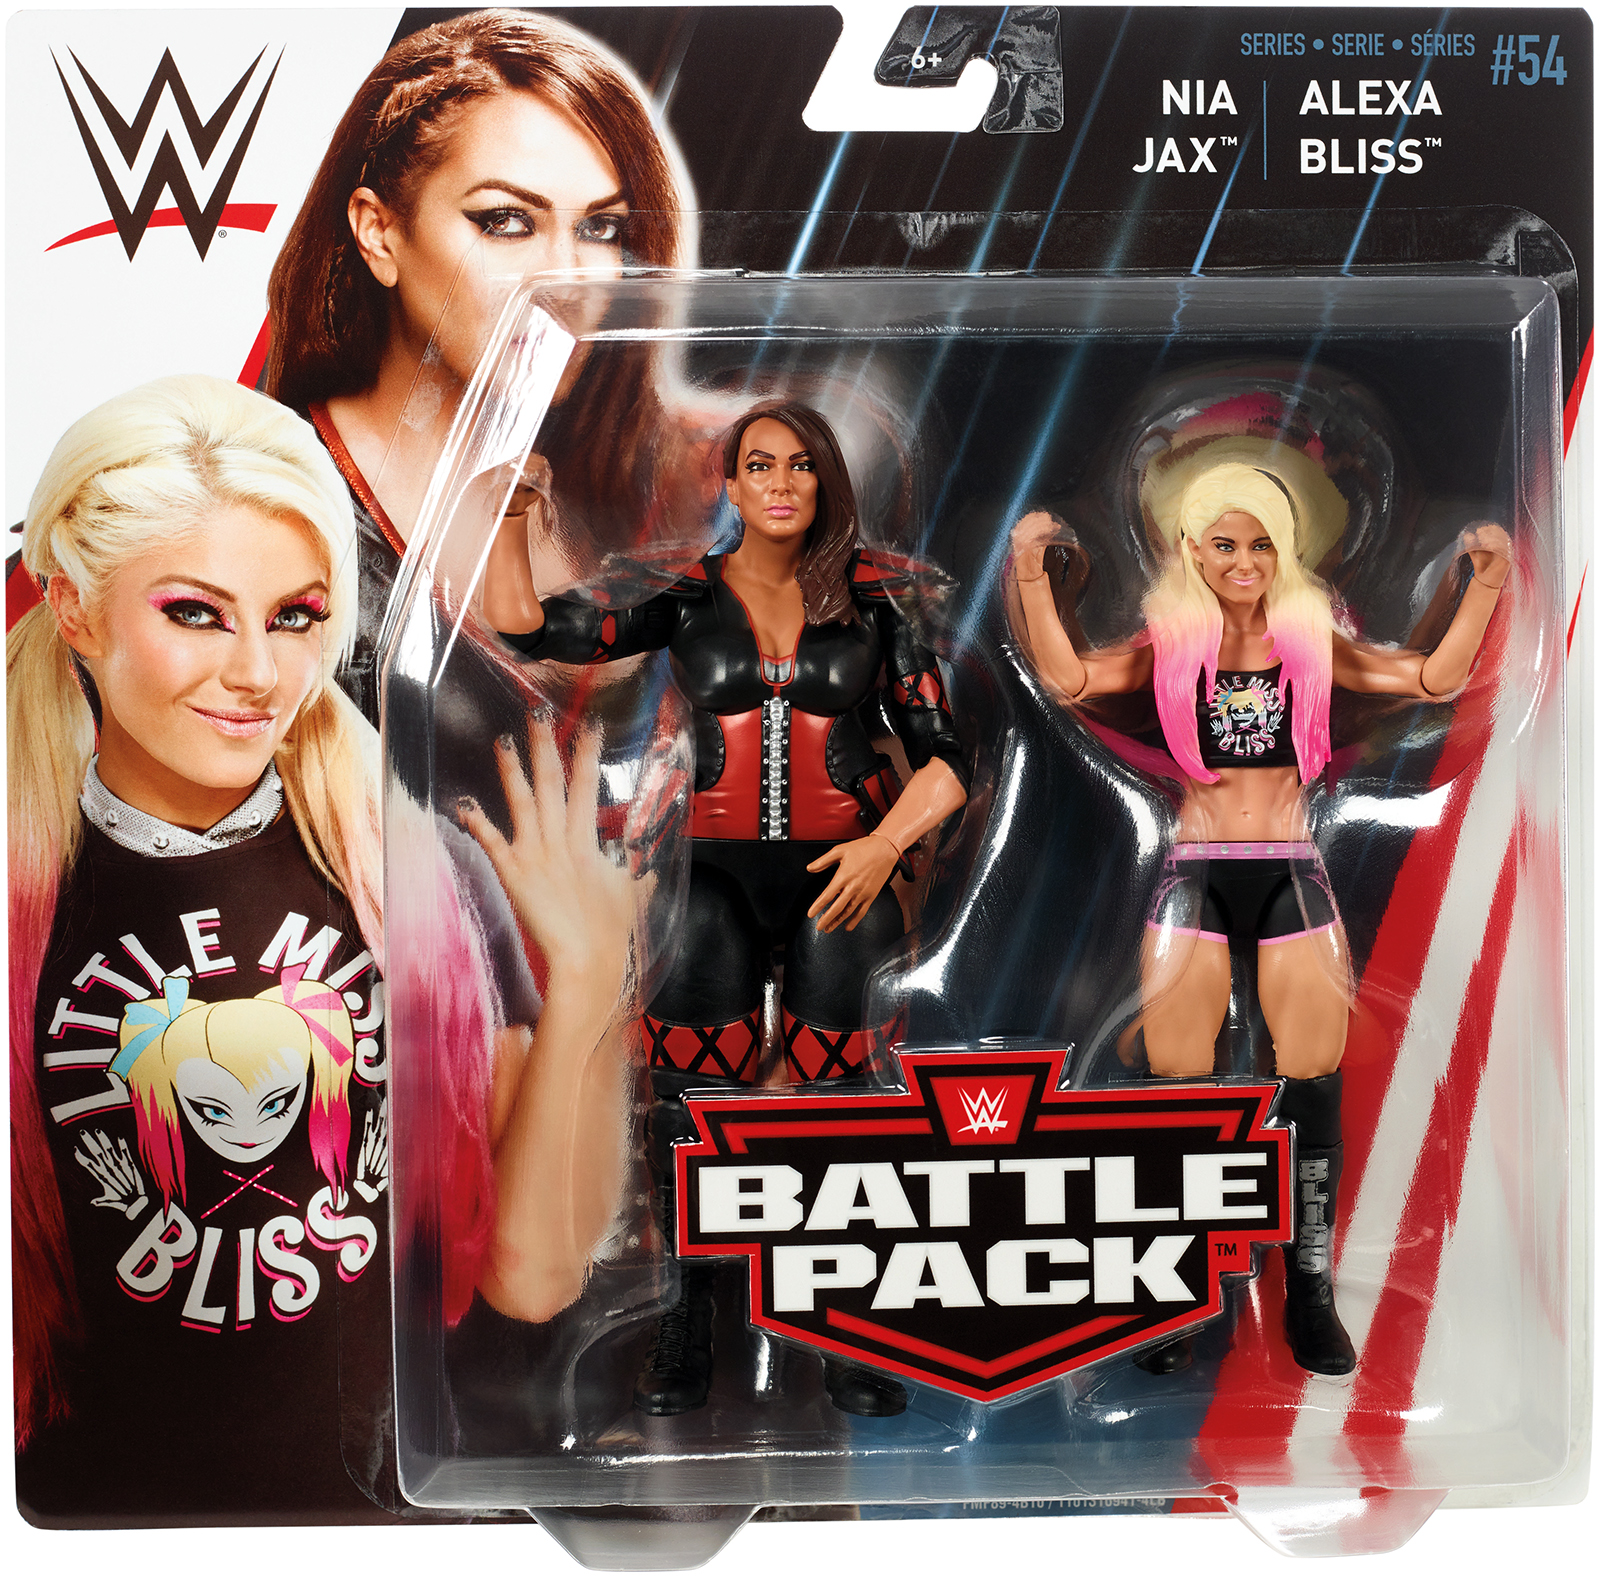 Alexa Bliss & Nia Jax - WWE Battle Packs 54 Toy Wrestling Action Figures